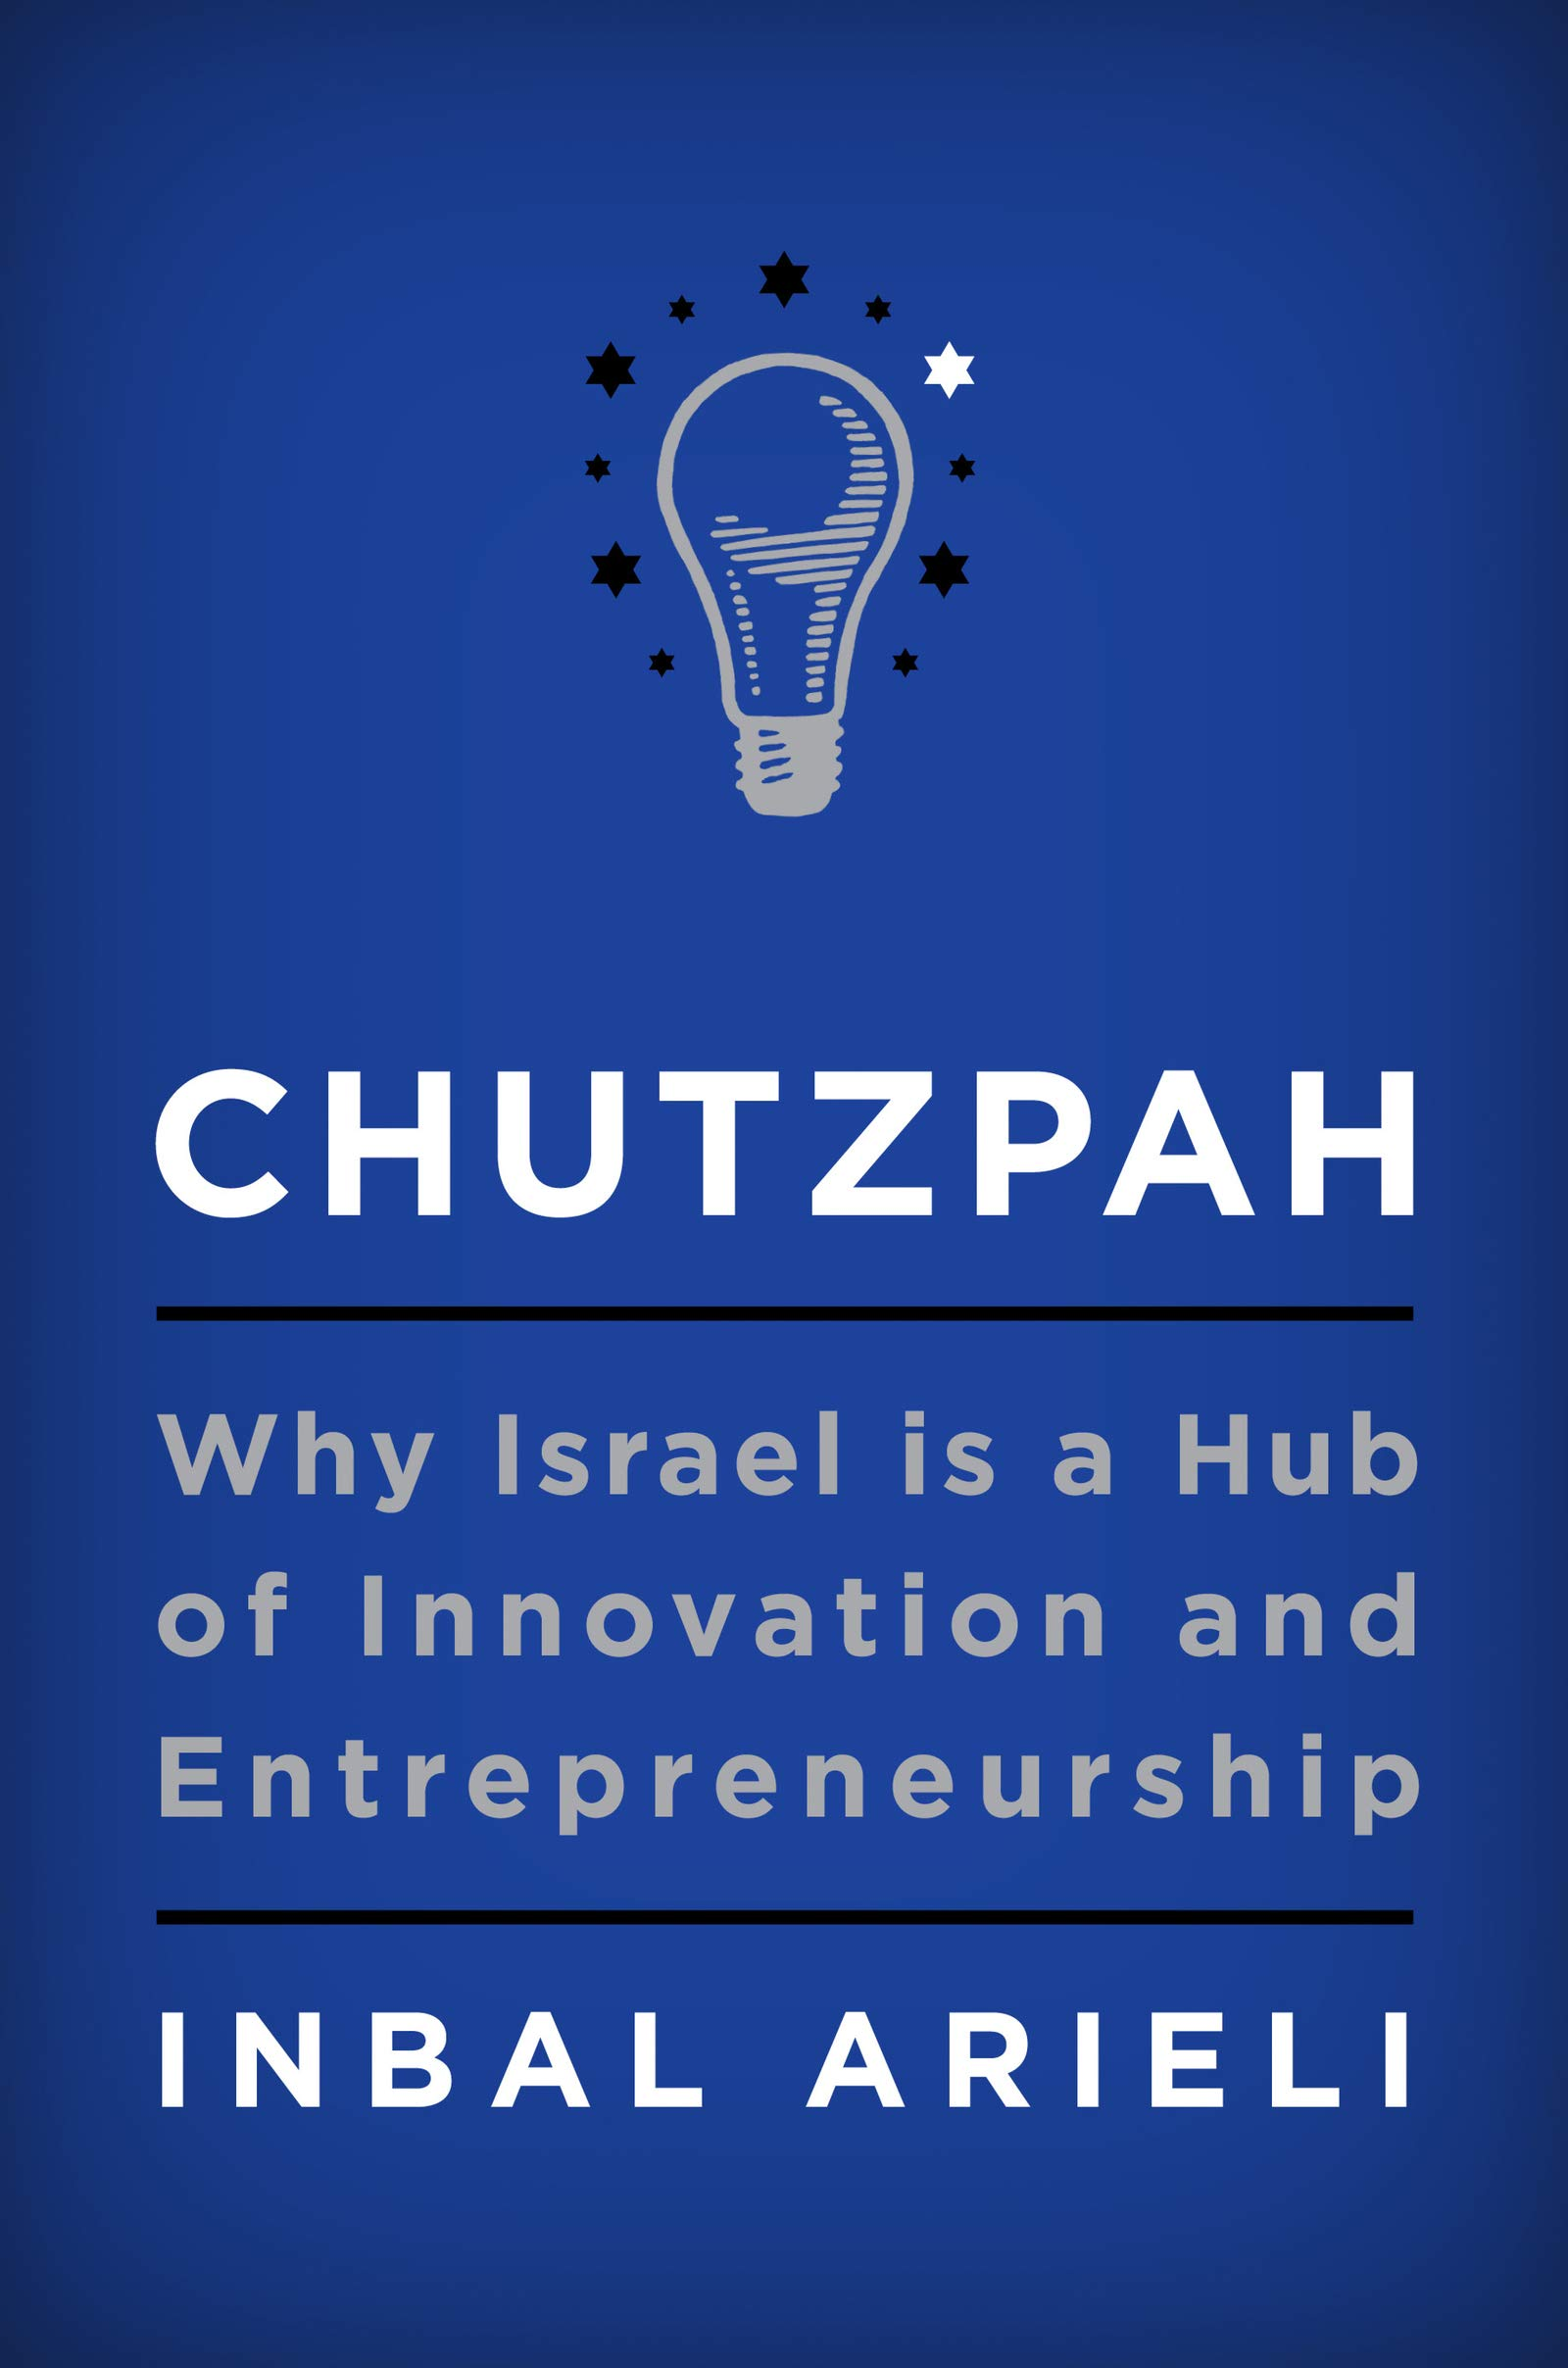 Amazon.com: Chutzpah: Why Israel Is a Hub of Innovation and ...